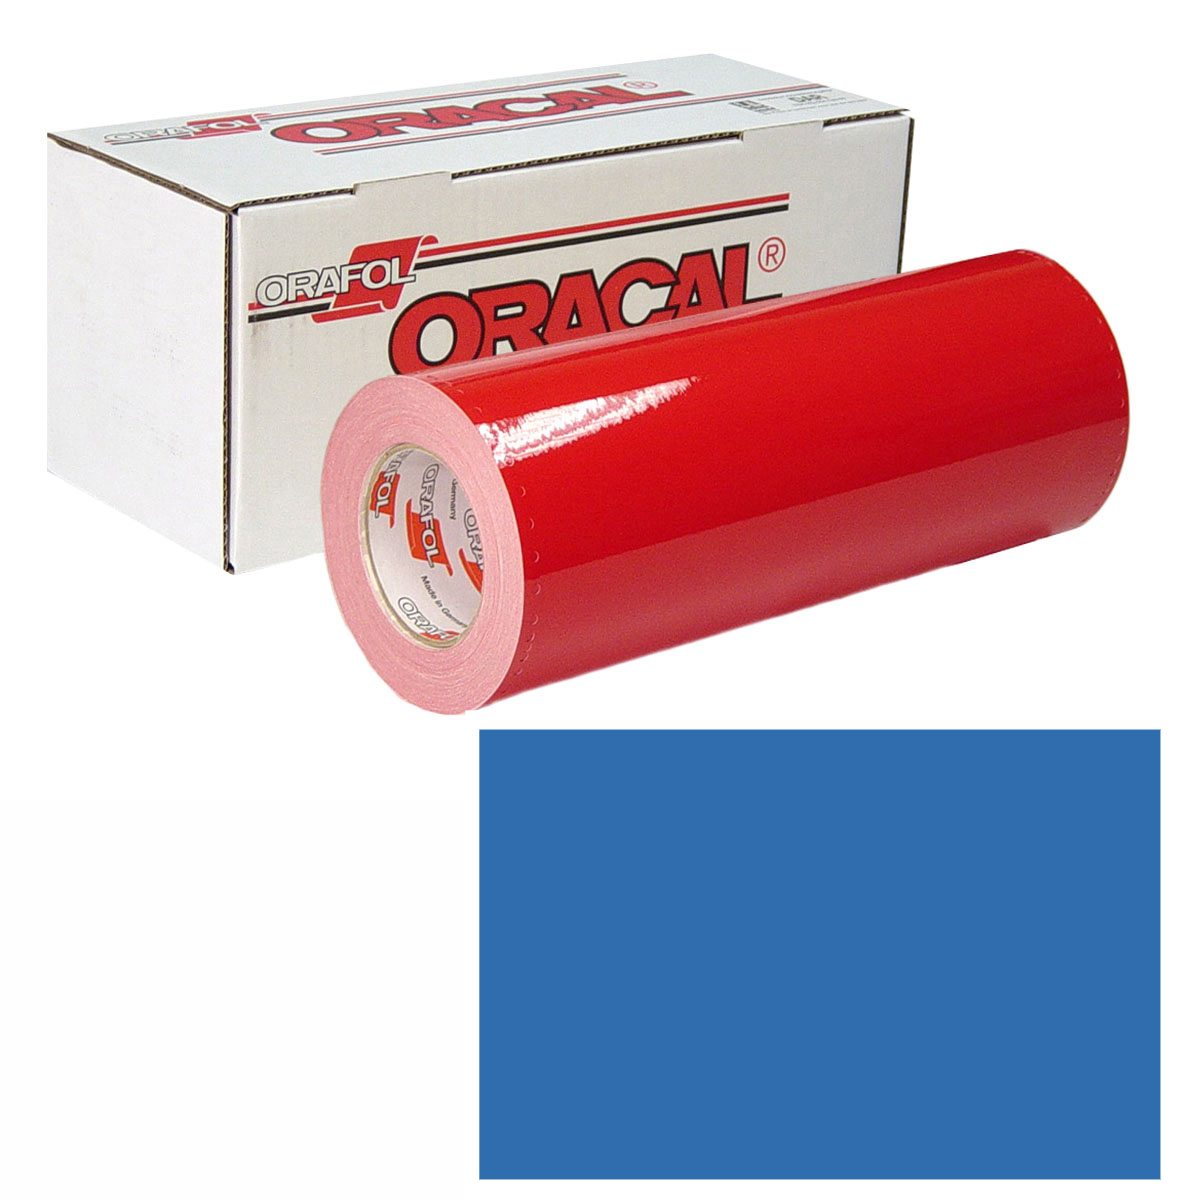 ORACAL 951 15in X 50yd 049 King Blue